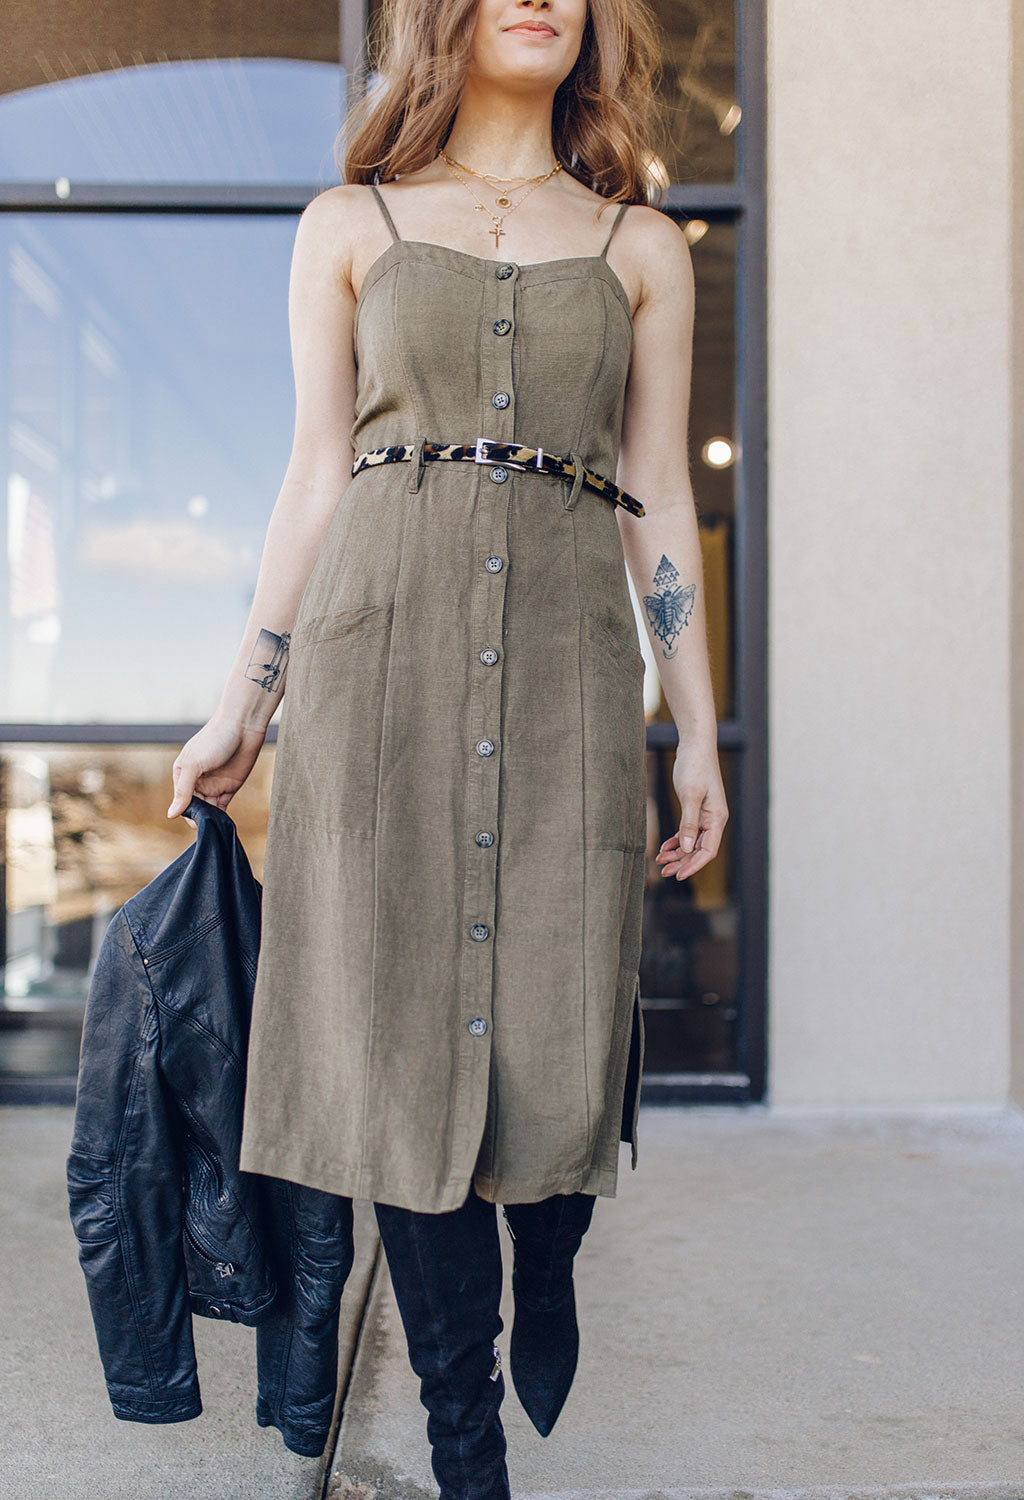 Rails Evie Dress - RUST & Co.